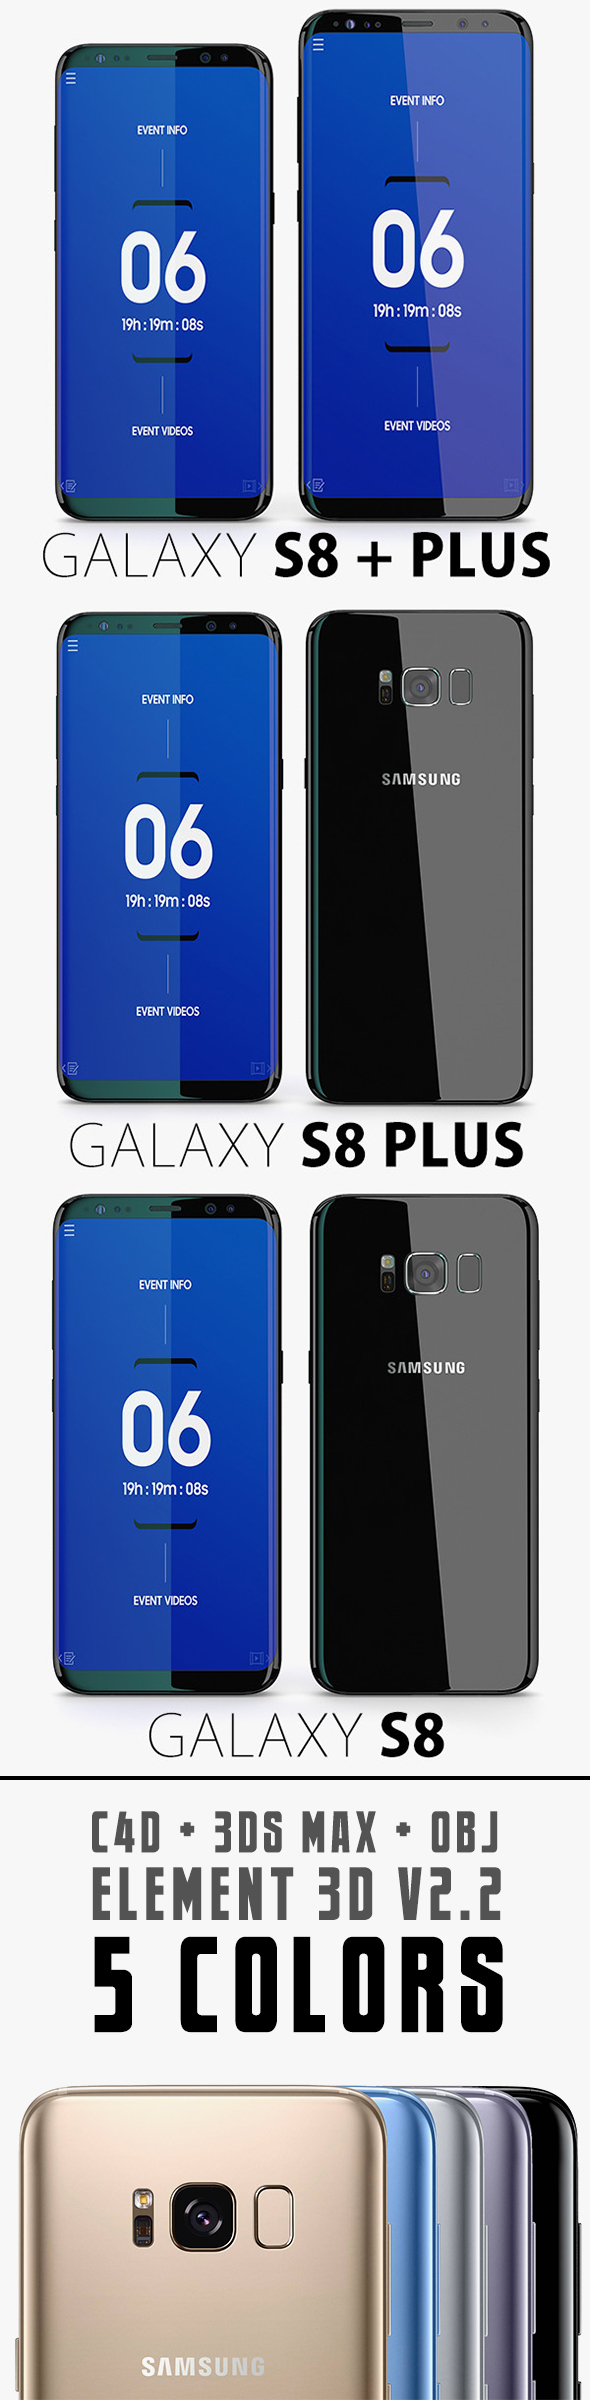 Samsung galaxy j7 for element 3d - Element 3d V2 2 Samsung Galaxy S8 S8 Plus All Colors 3docean